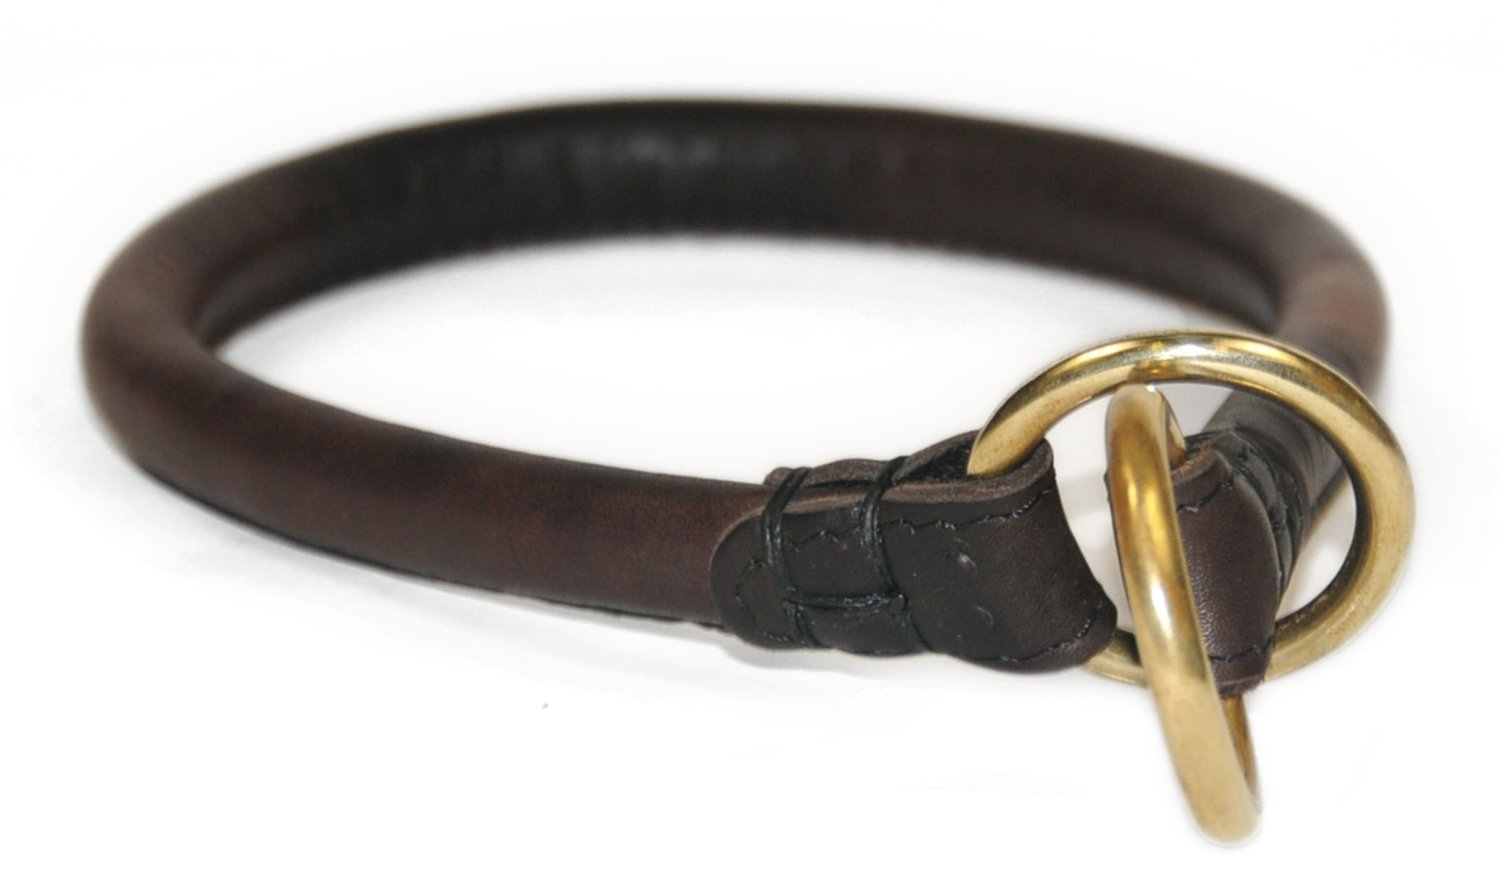 Dean & Tyler  Desperado  New Leather Dog Choke Collar Brown Fits Neck 36cm 41cm Unique Designs using High Quality Leather From Europe Great for Everyday Use and Training. Available in Different Sizes.